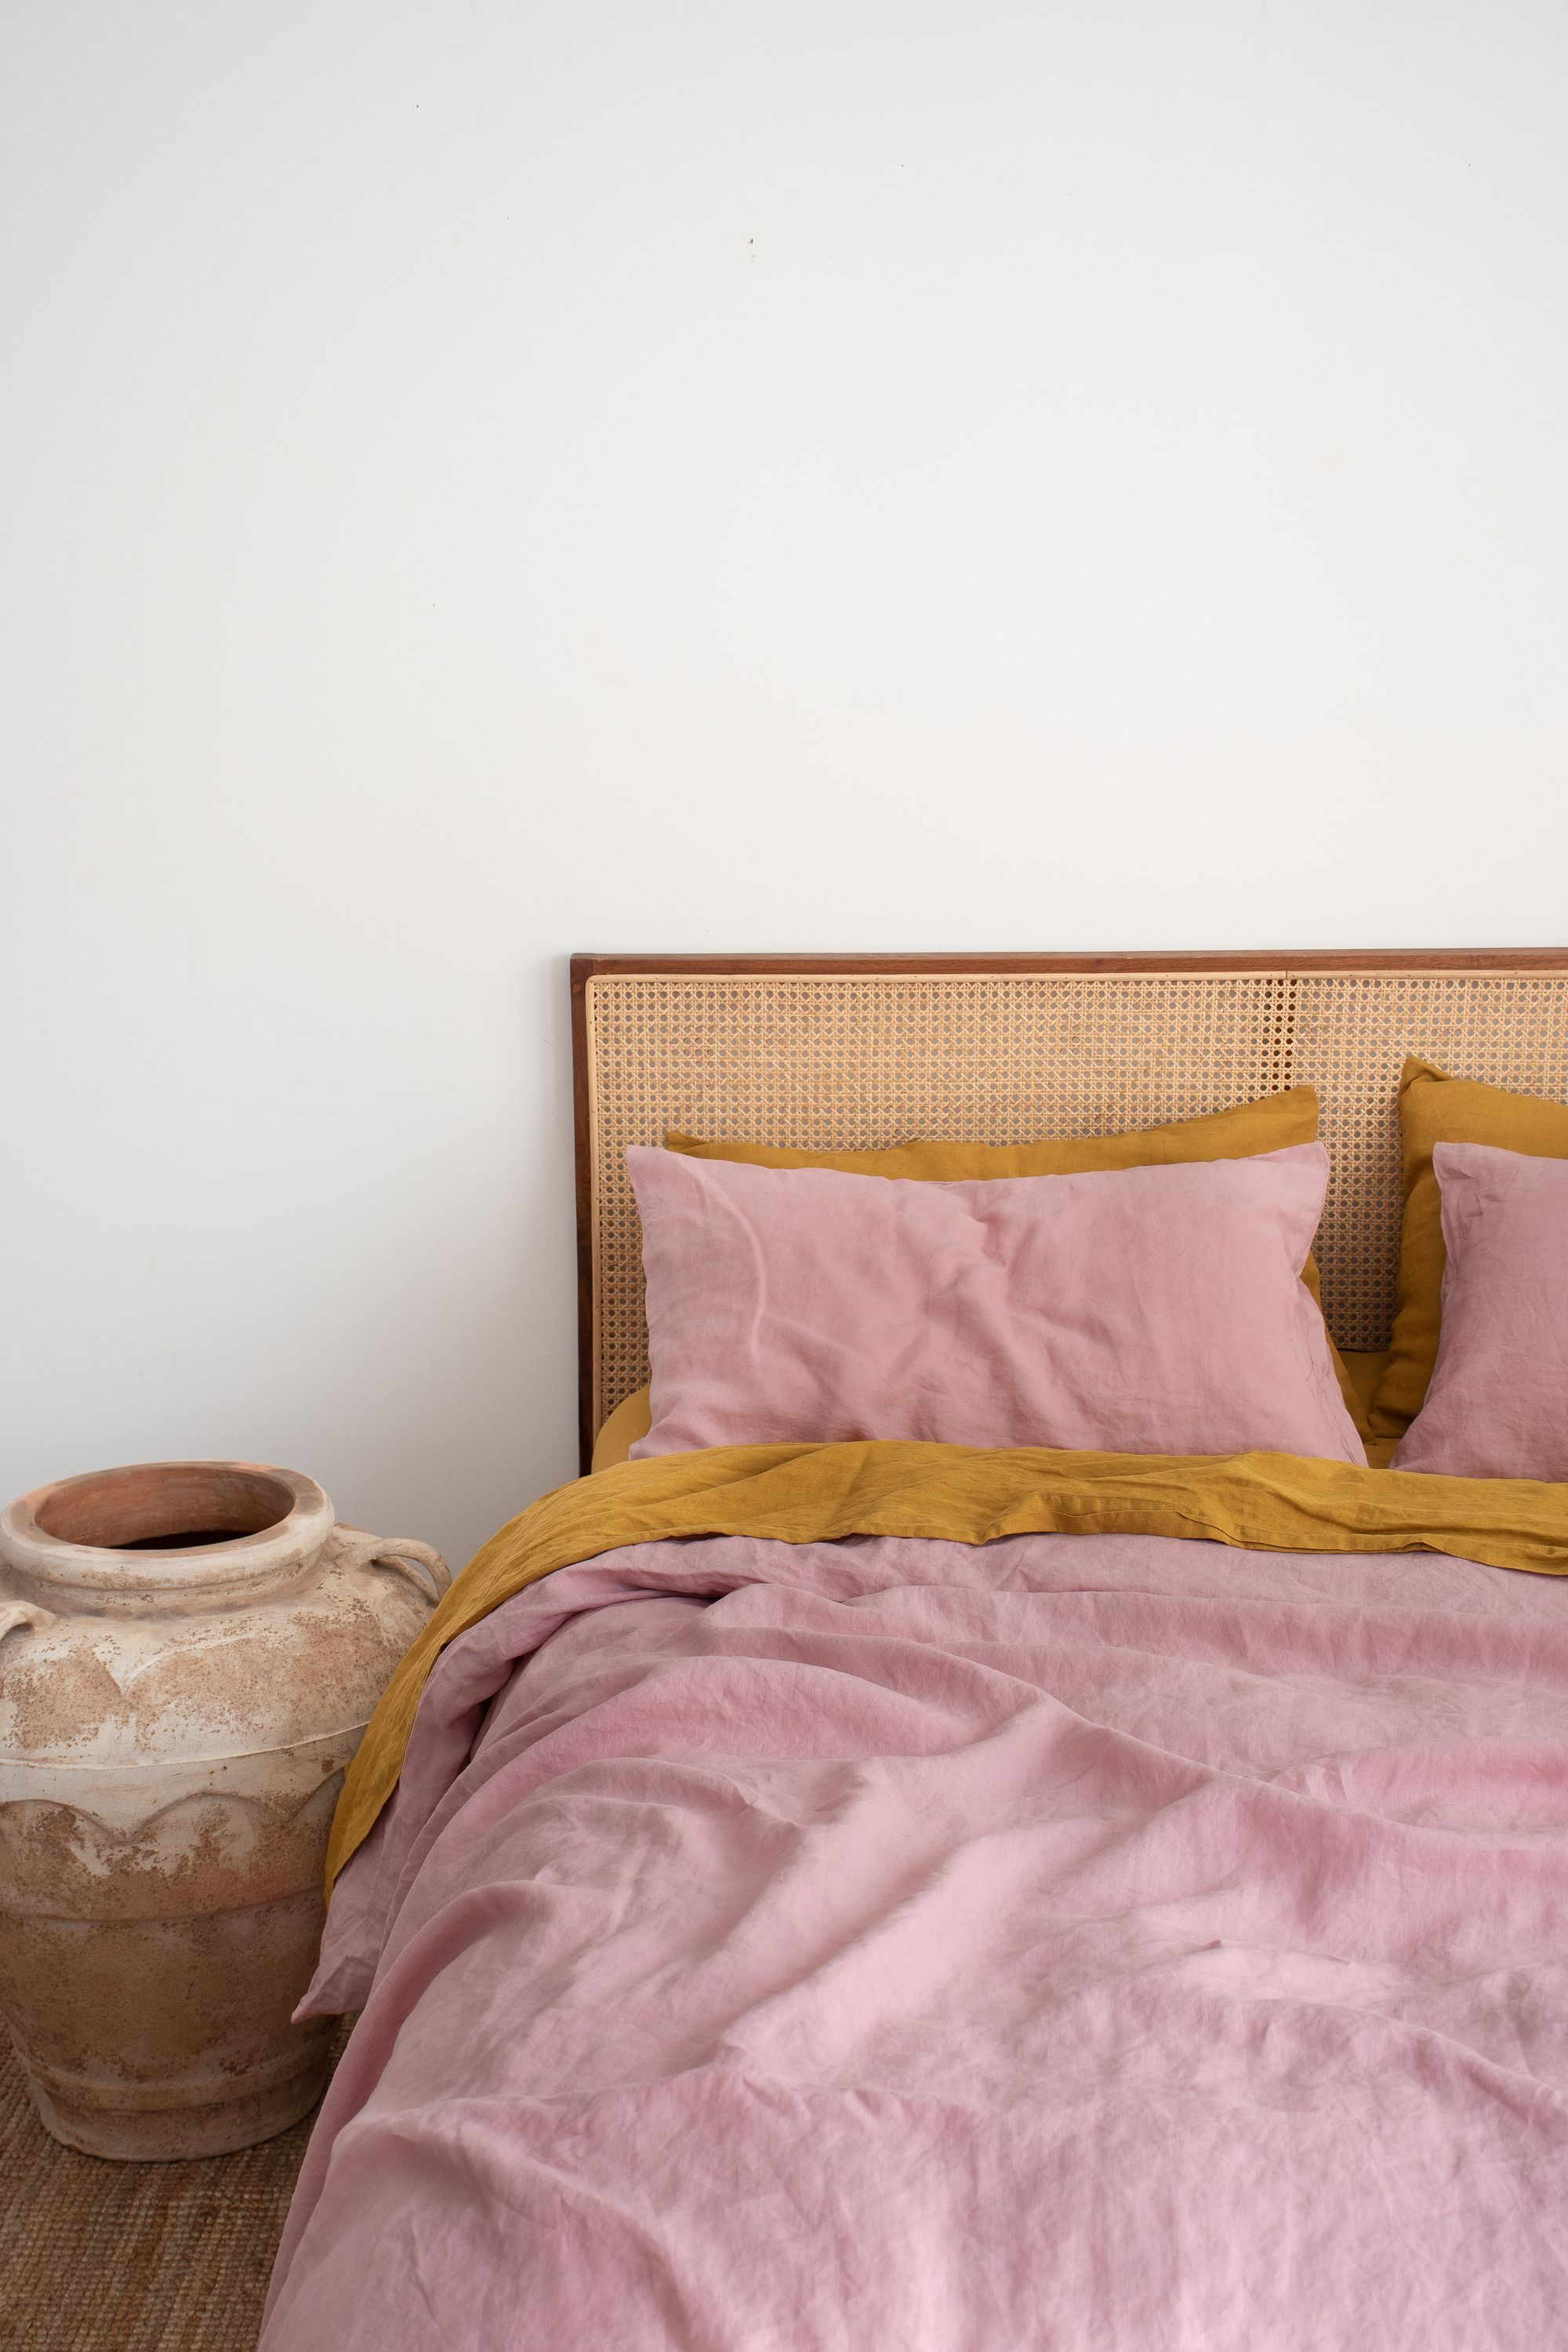 WILDFLOWER & MUSTARD FRENCH LINEN BEDDING #apartmentbedrooms